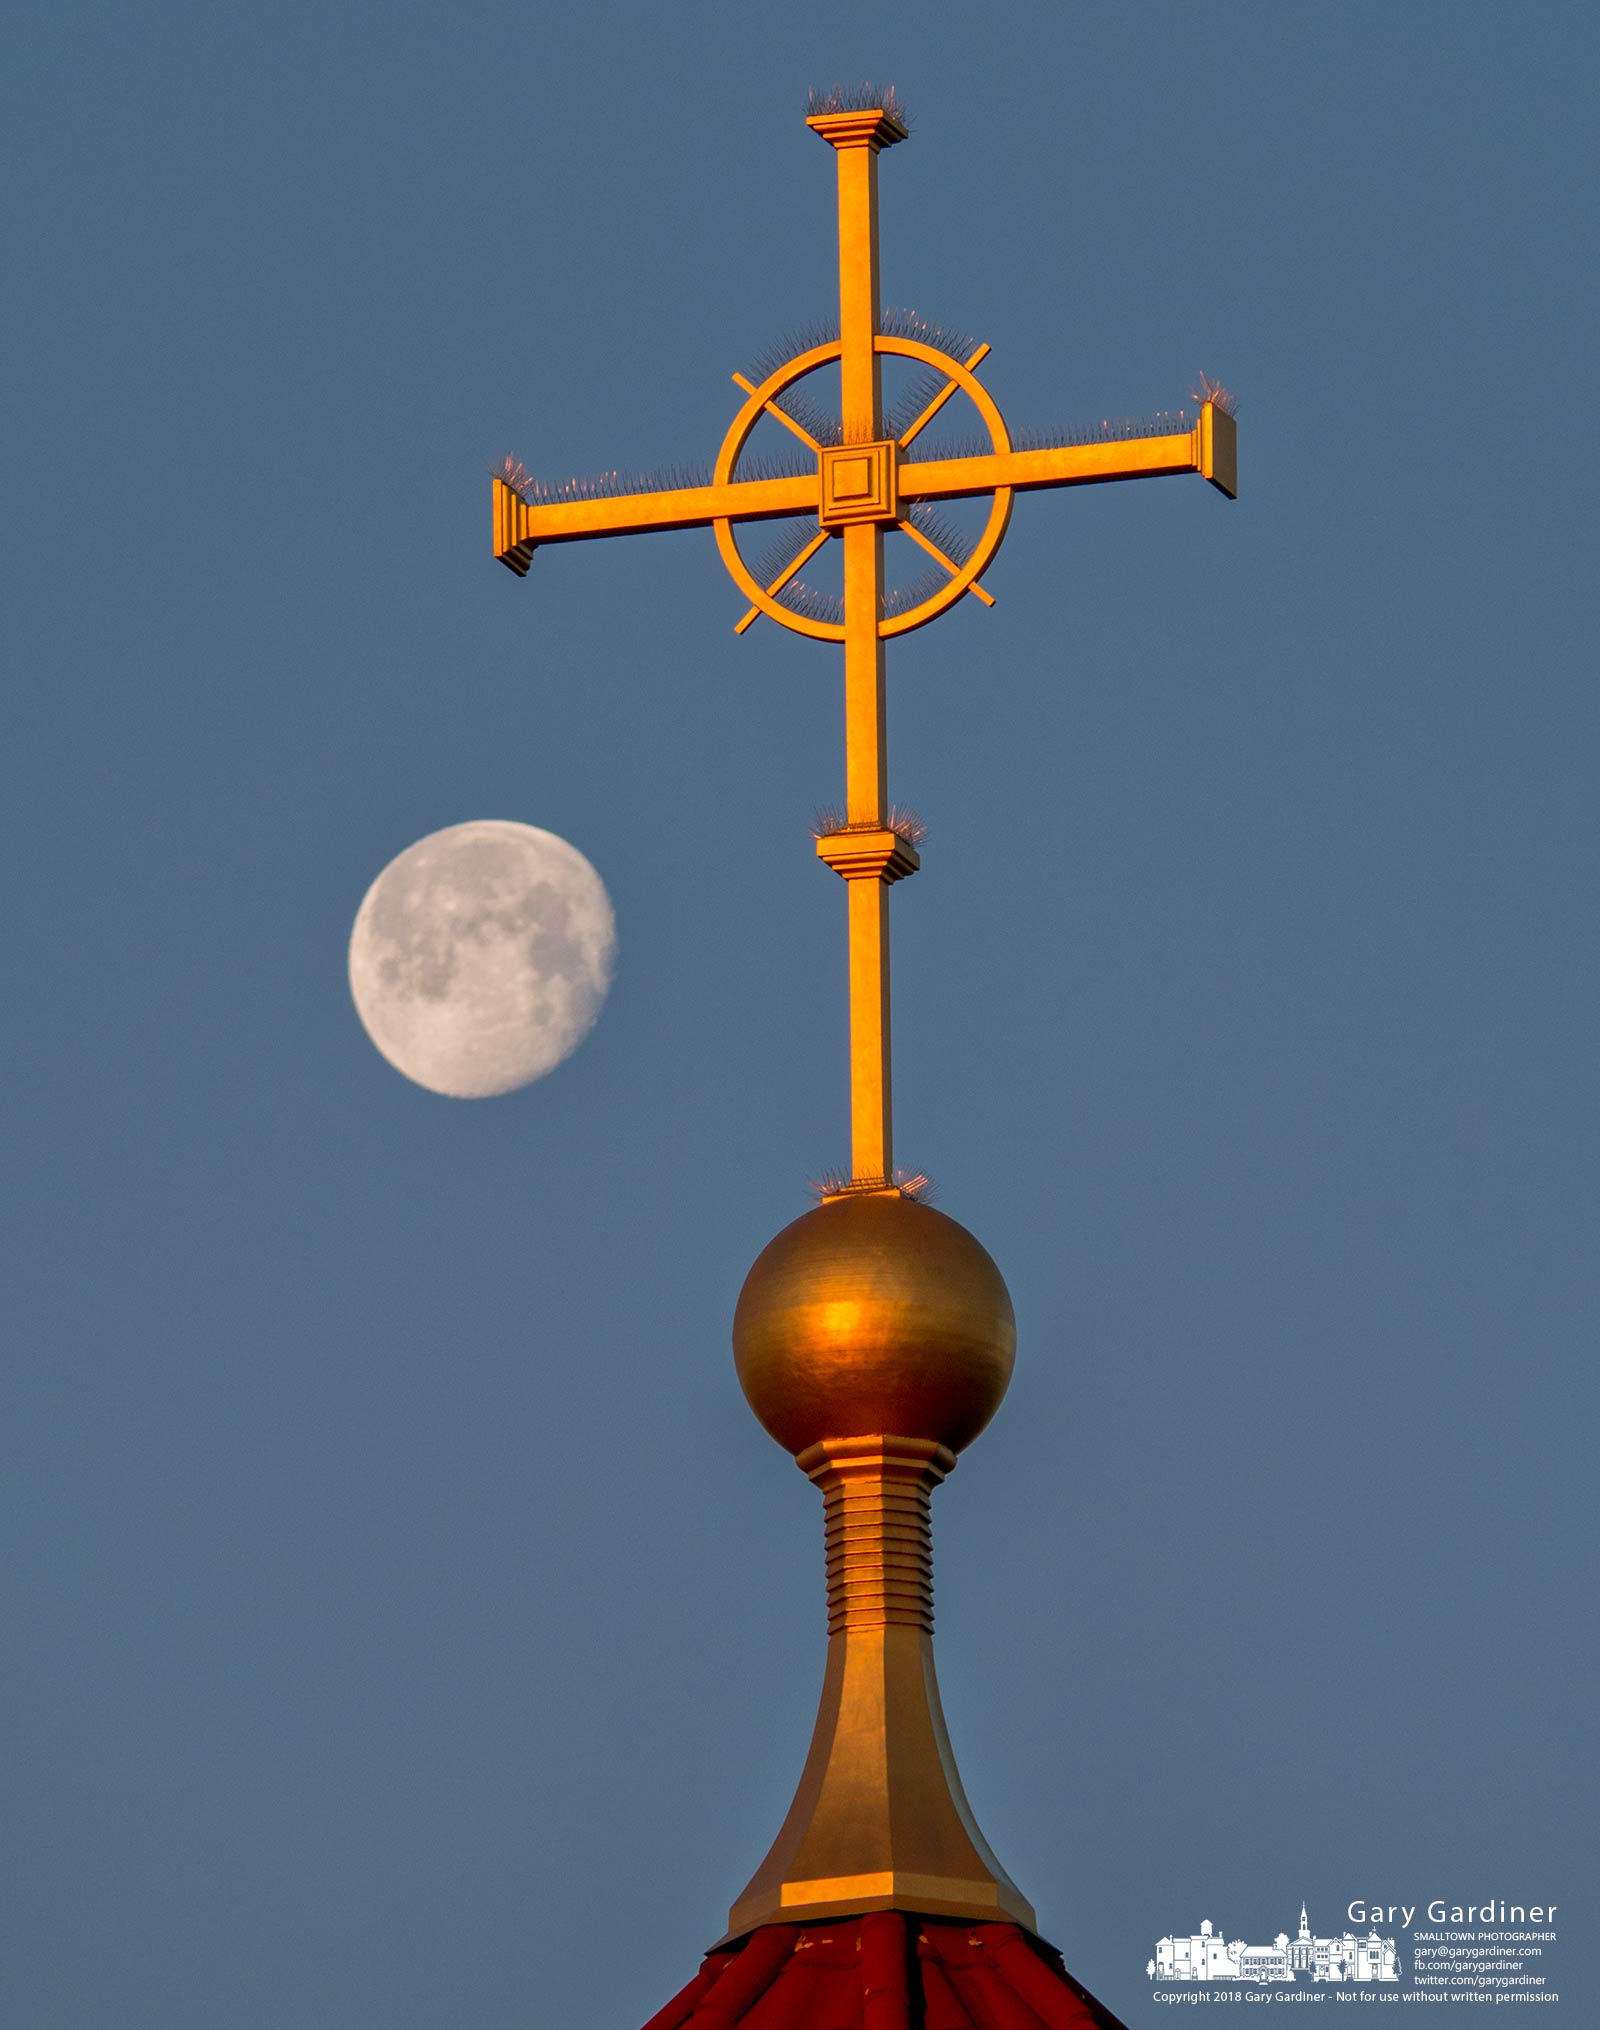 The early morning moon sets behind the cross at the top of St. Paul the Apostle Catholic Church in Westerville, Ohio. My Final Photo for March 4, 2018.